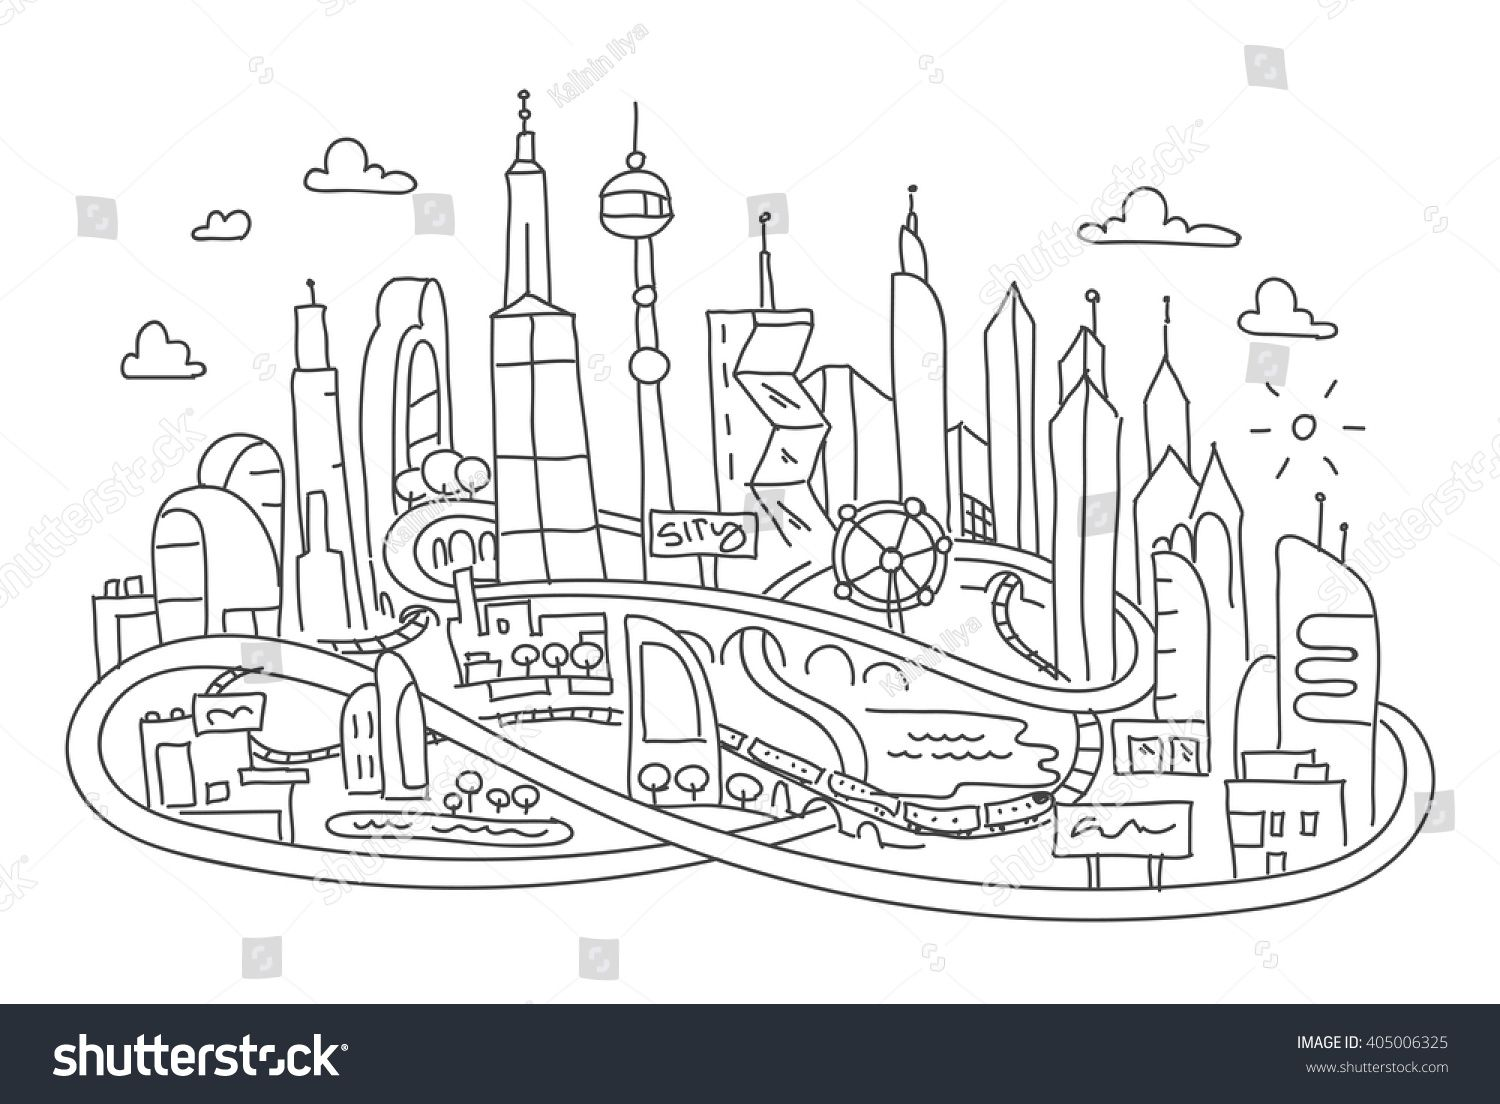 Future City Drawing Easy For Kids Google Search In 2020 Futuristic City Line Drawing City Drawing